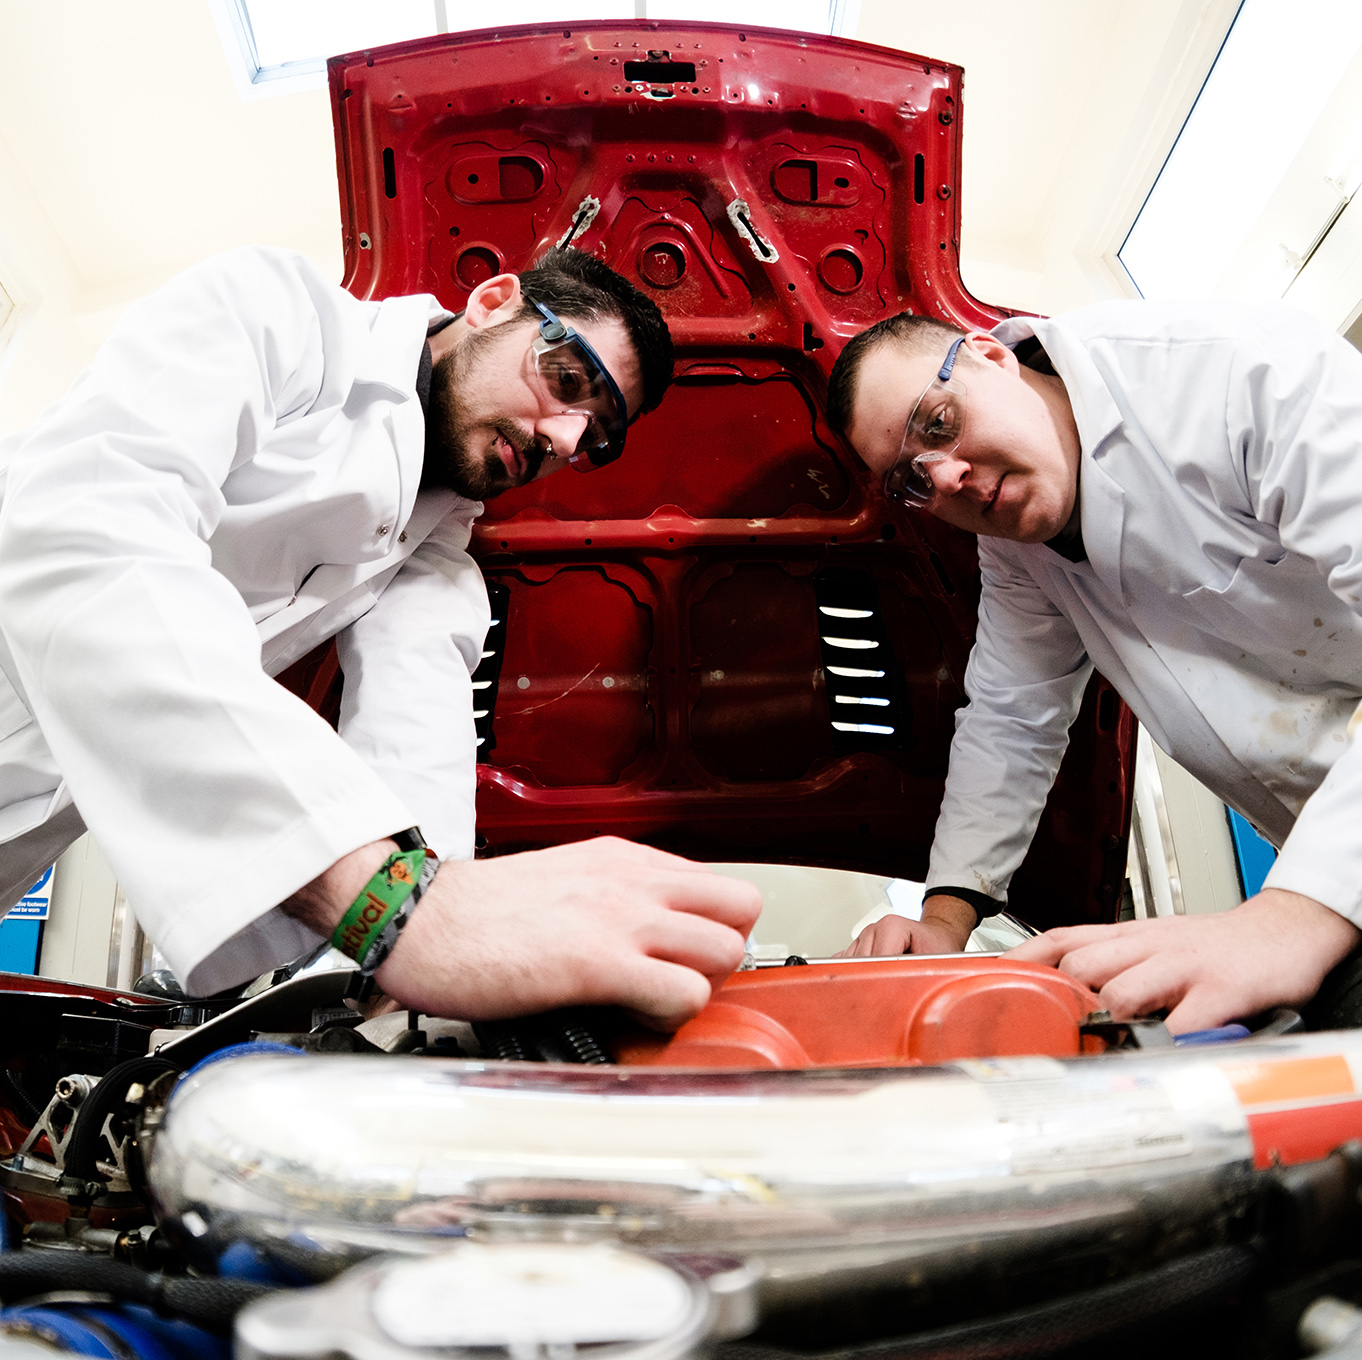 Two students wearing safety goggles working under the bonnet of a car